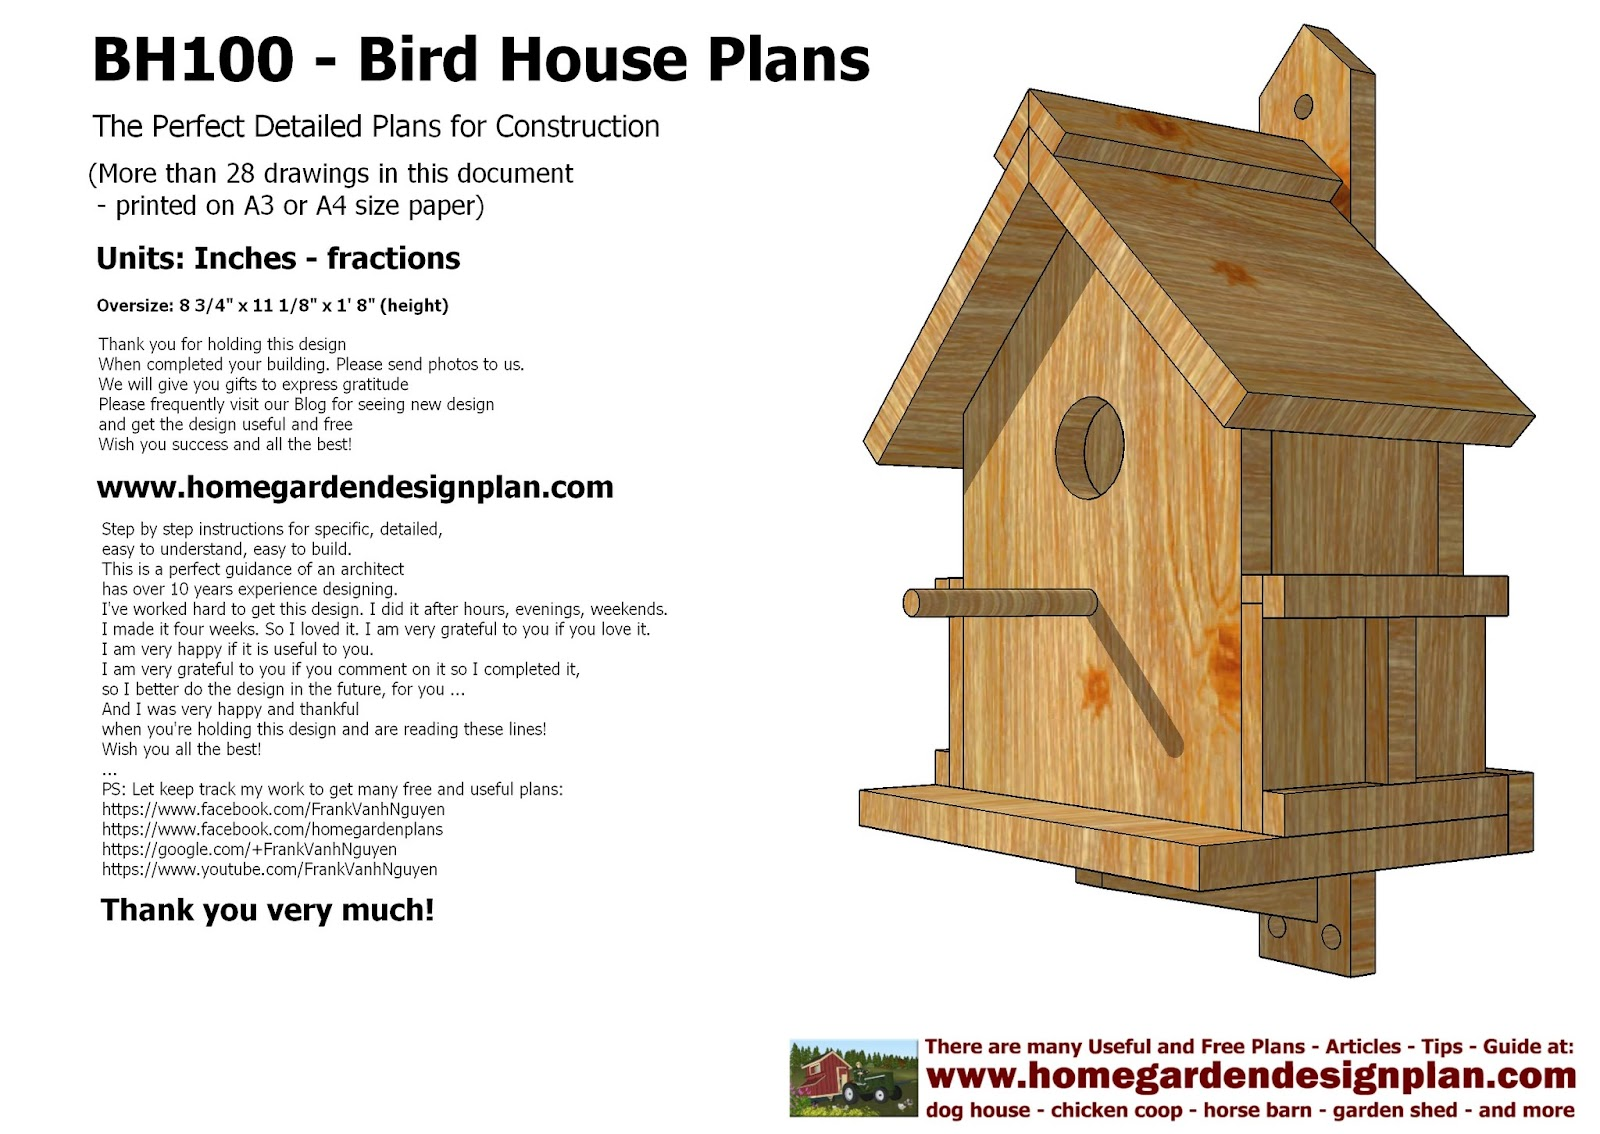 Sntila home garden plans bh100 bird house plans for Simple diy birdhouse plans